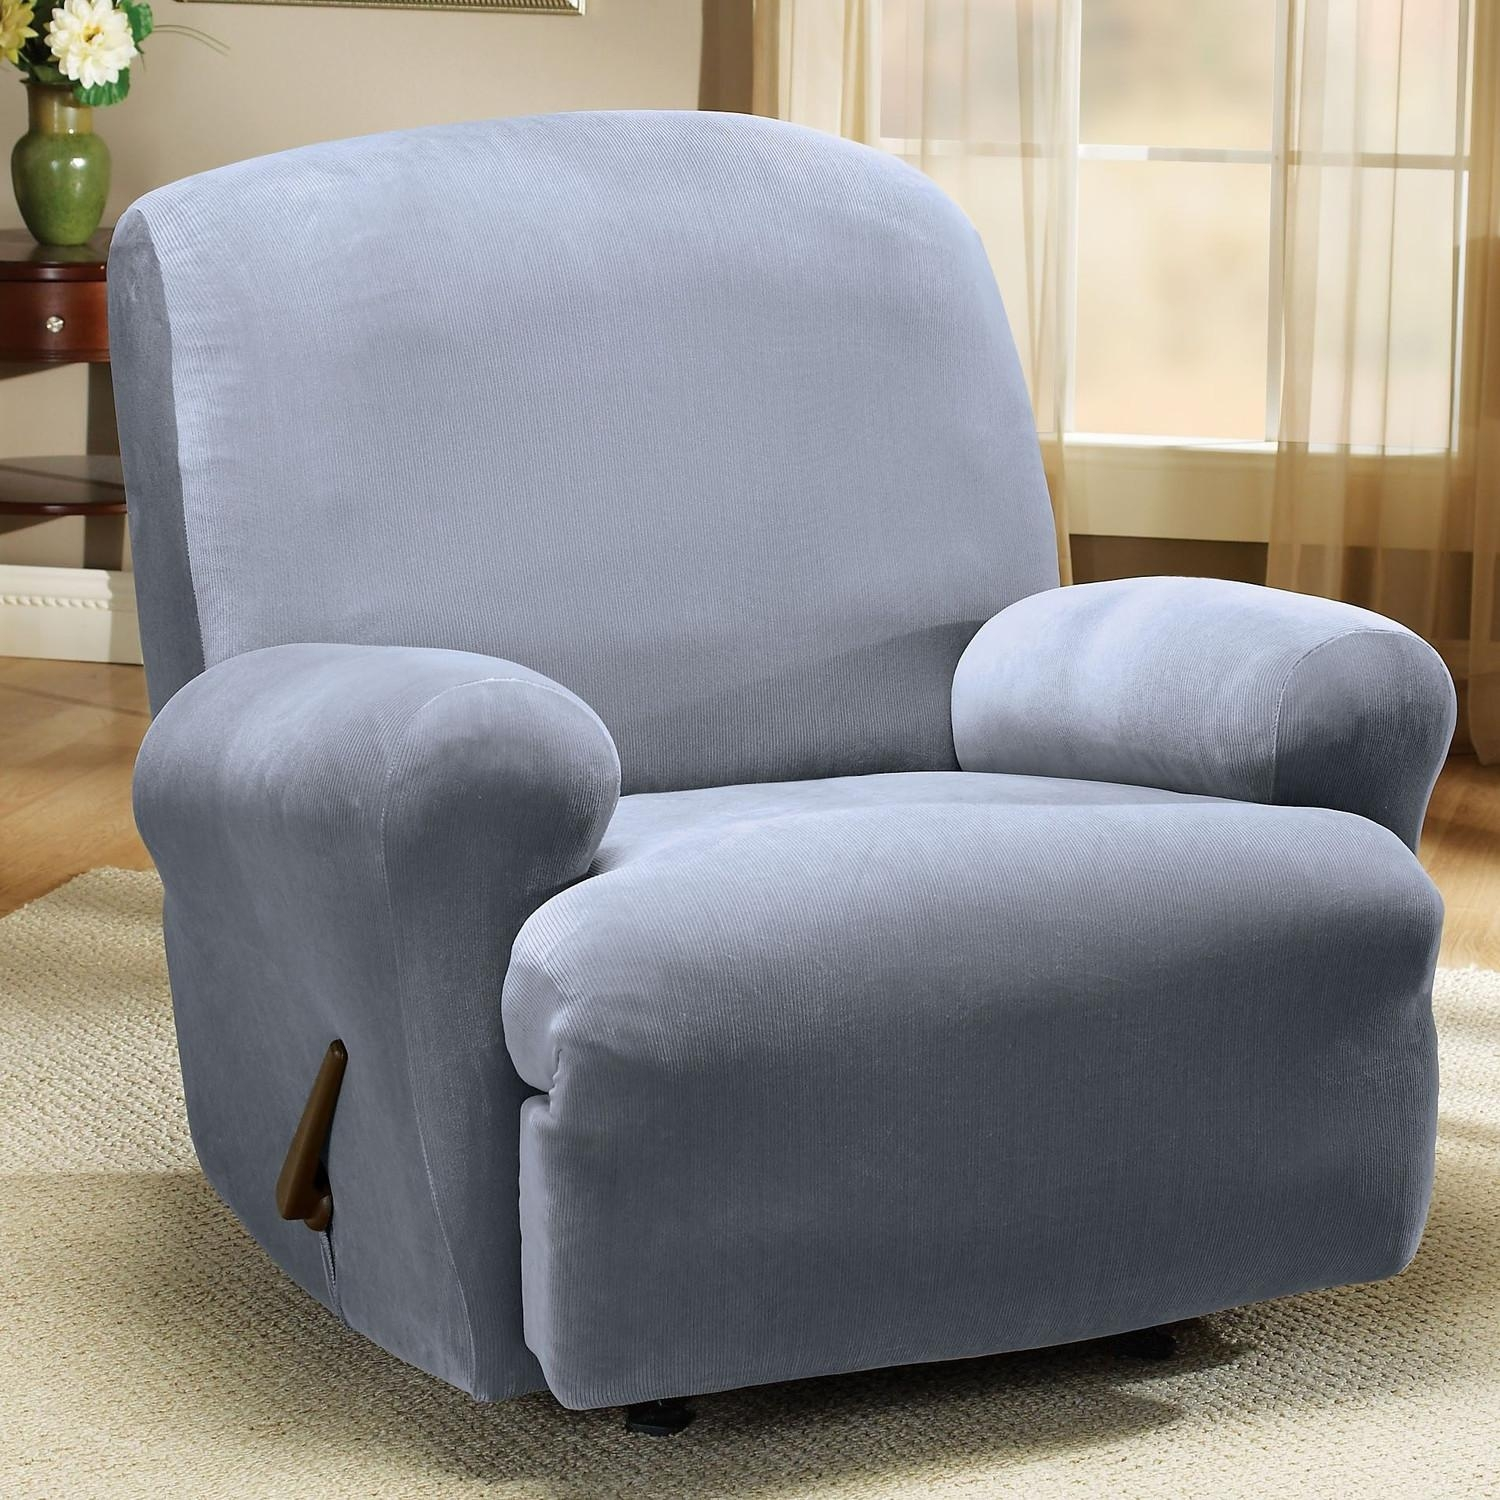 Decorating: Elegant Interior Home Decorating With Comfortable For Stretch Covers For Recliners (View 8 of 20)